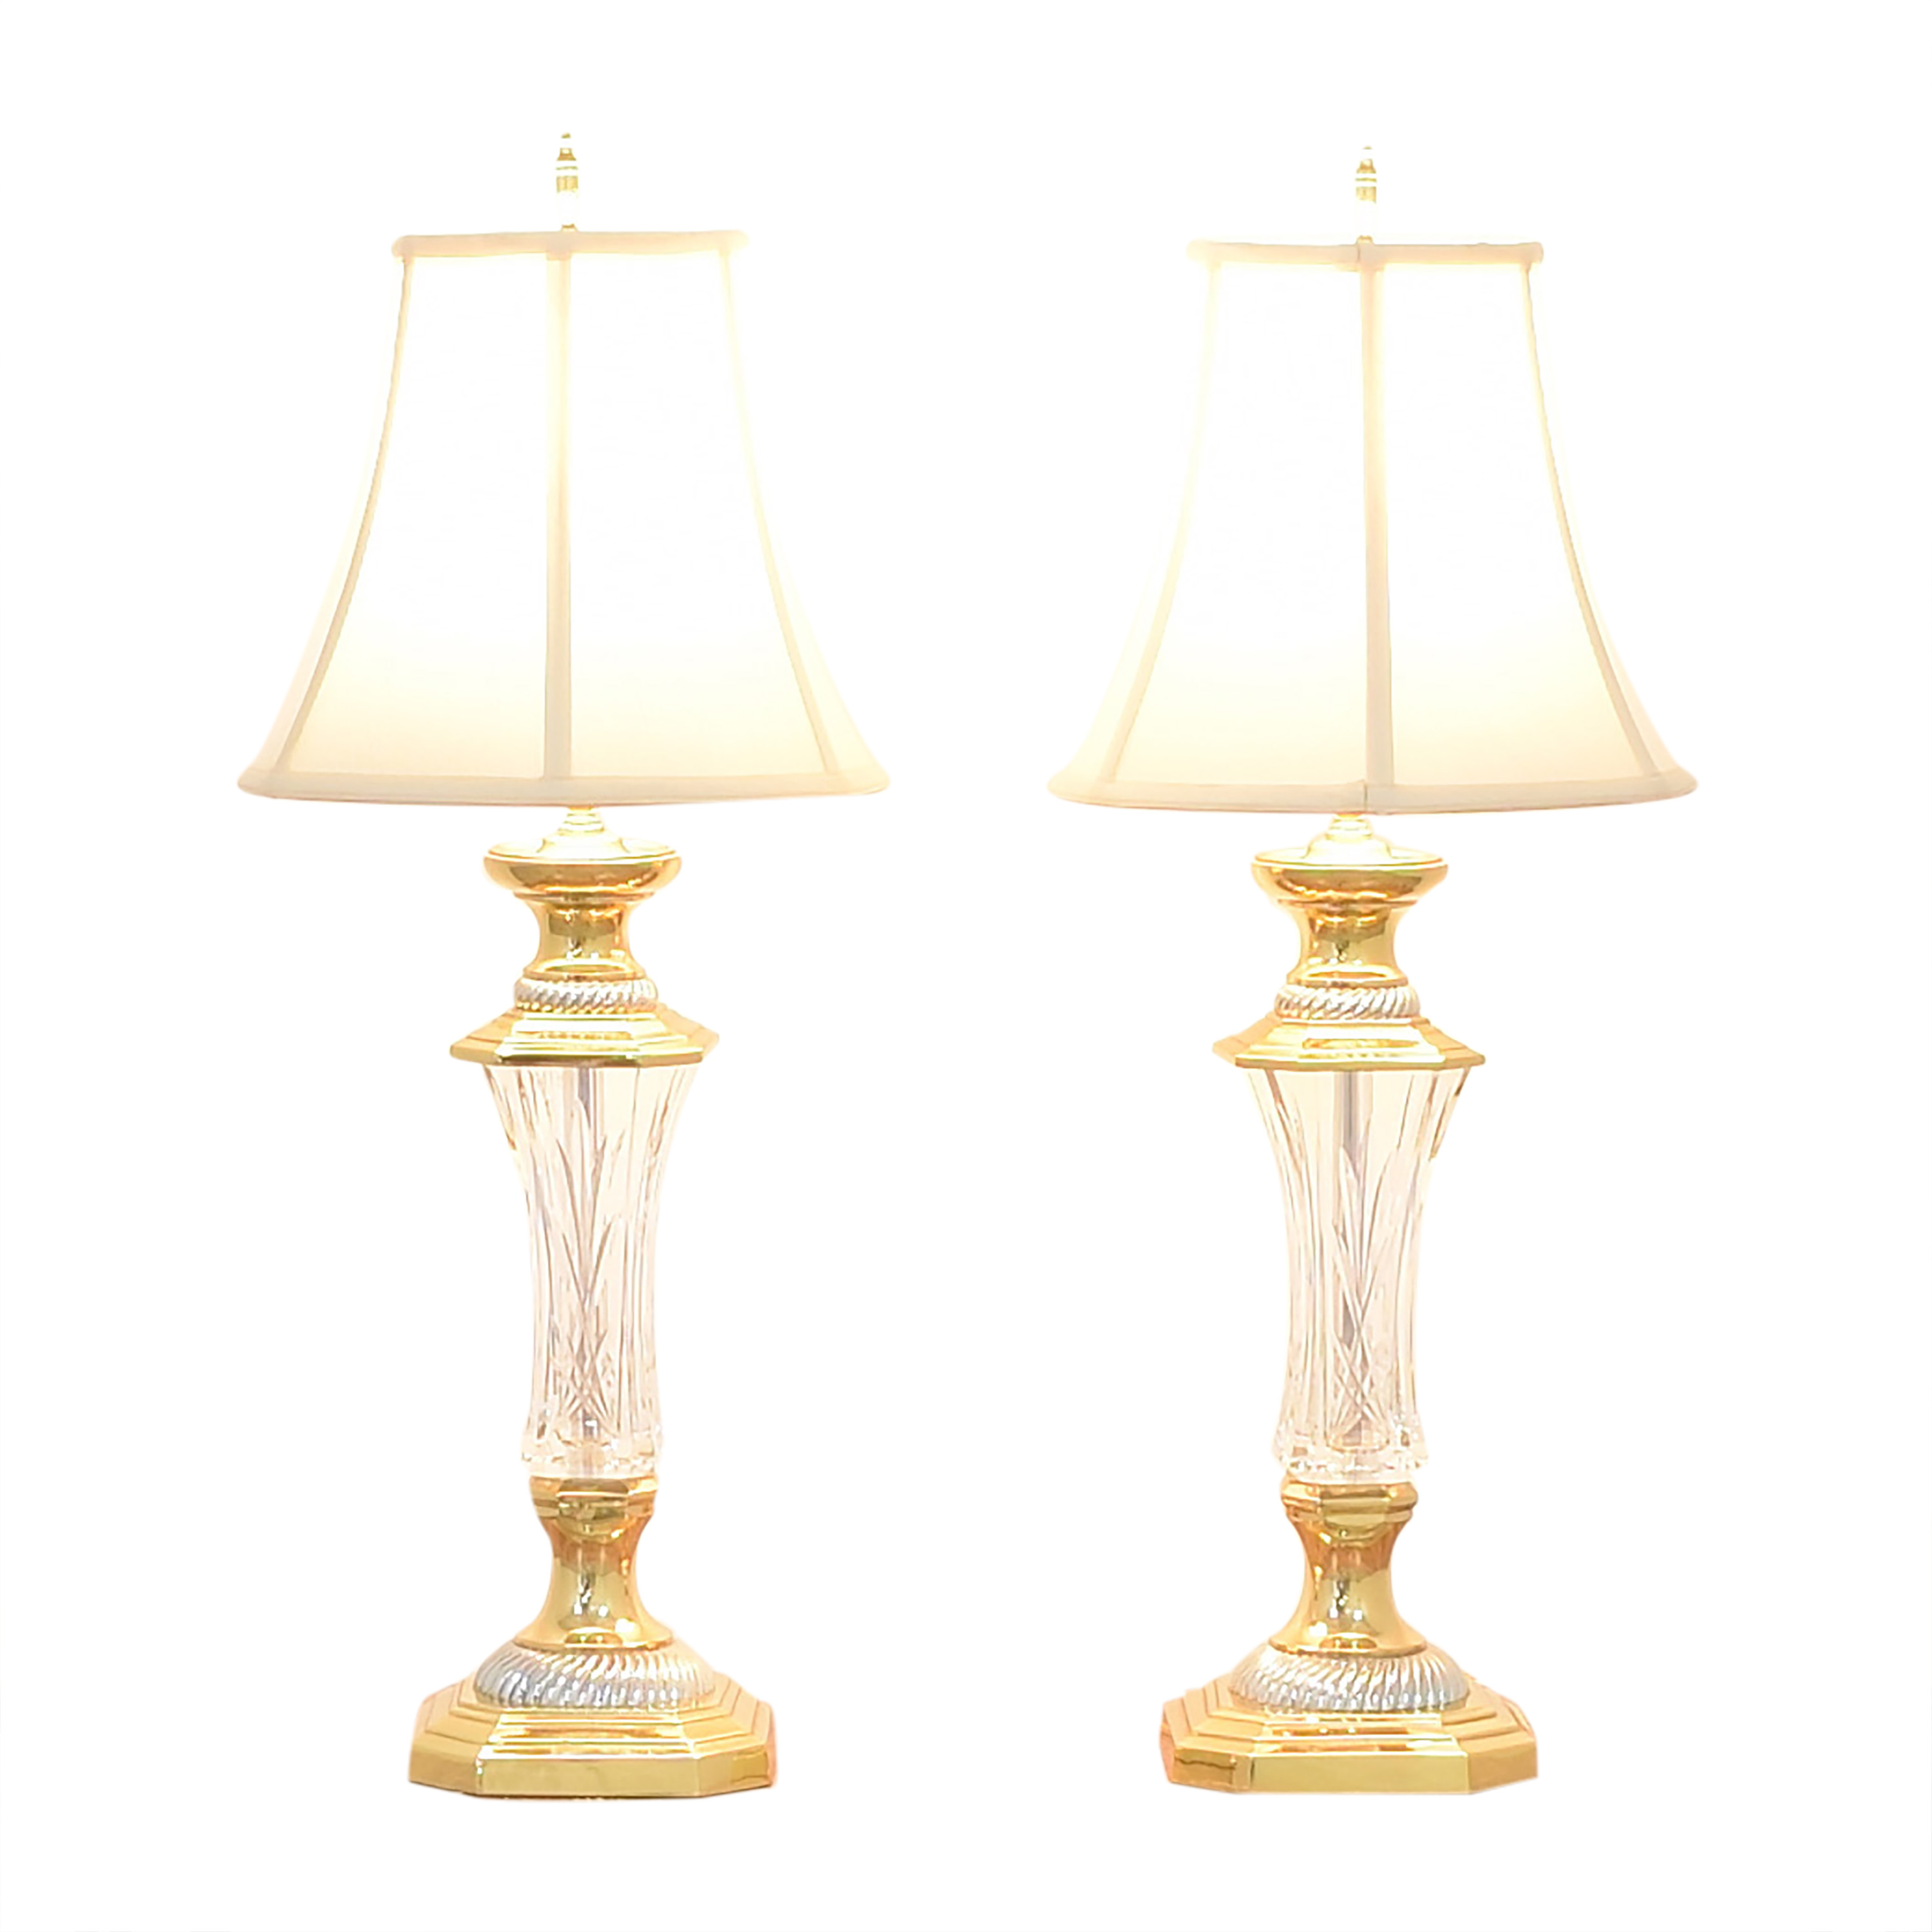 Waterford Florence Court Table Lamps / Decor